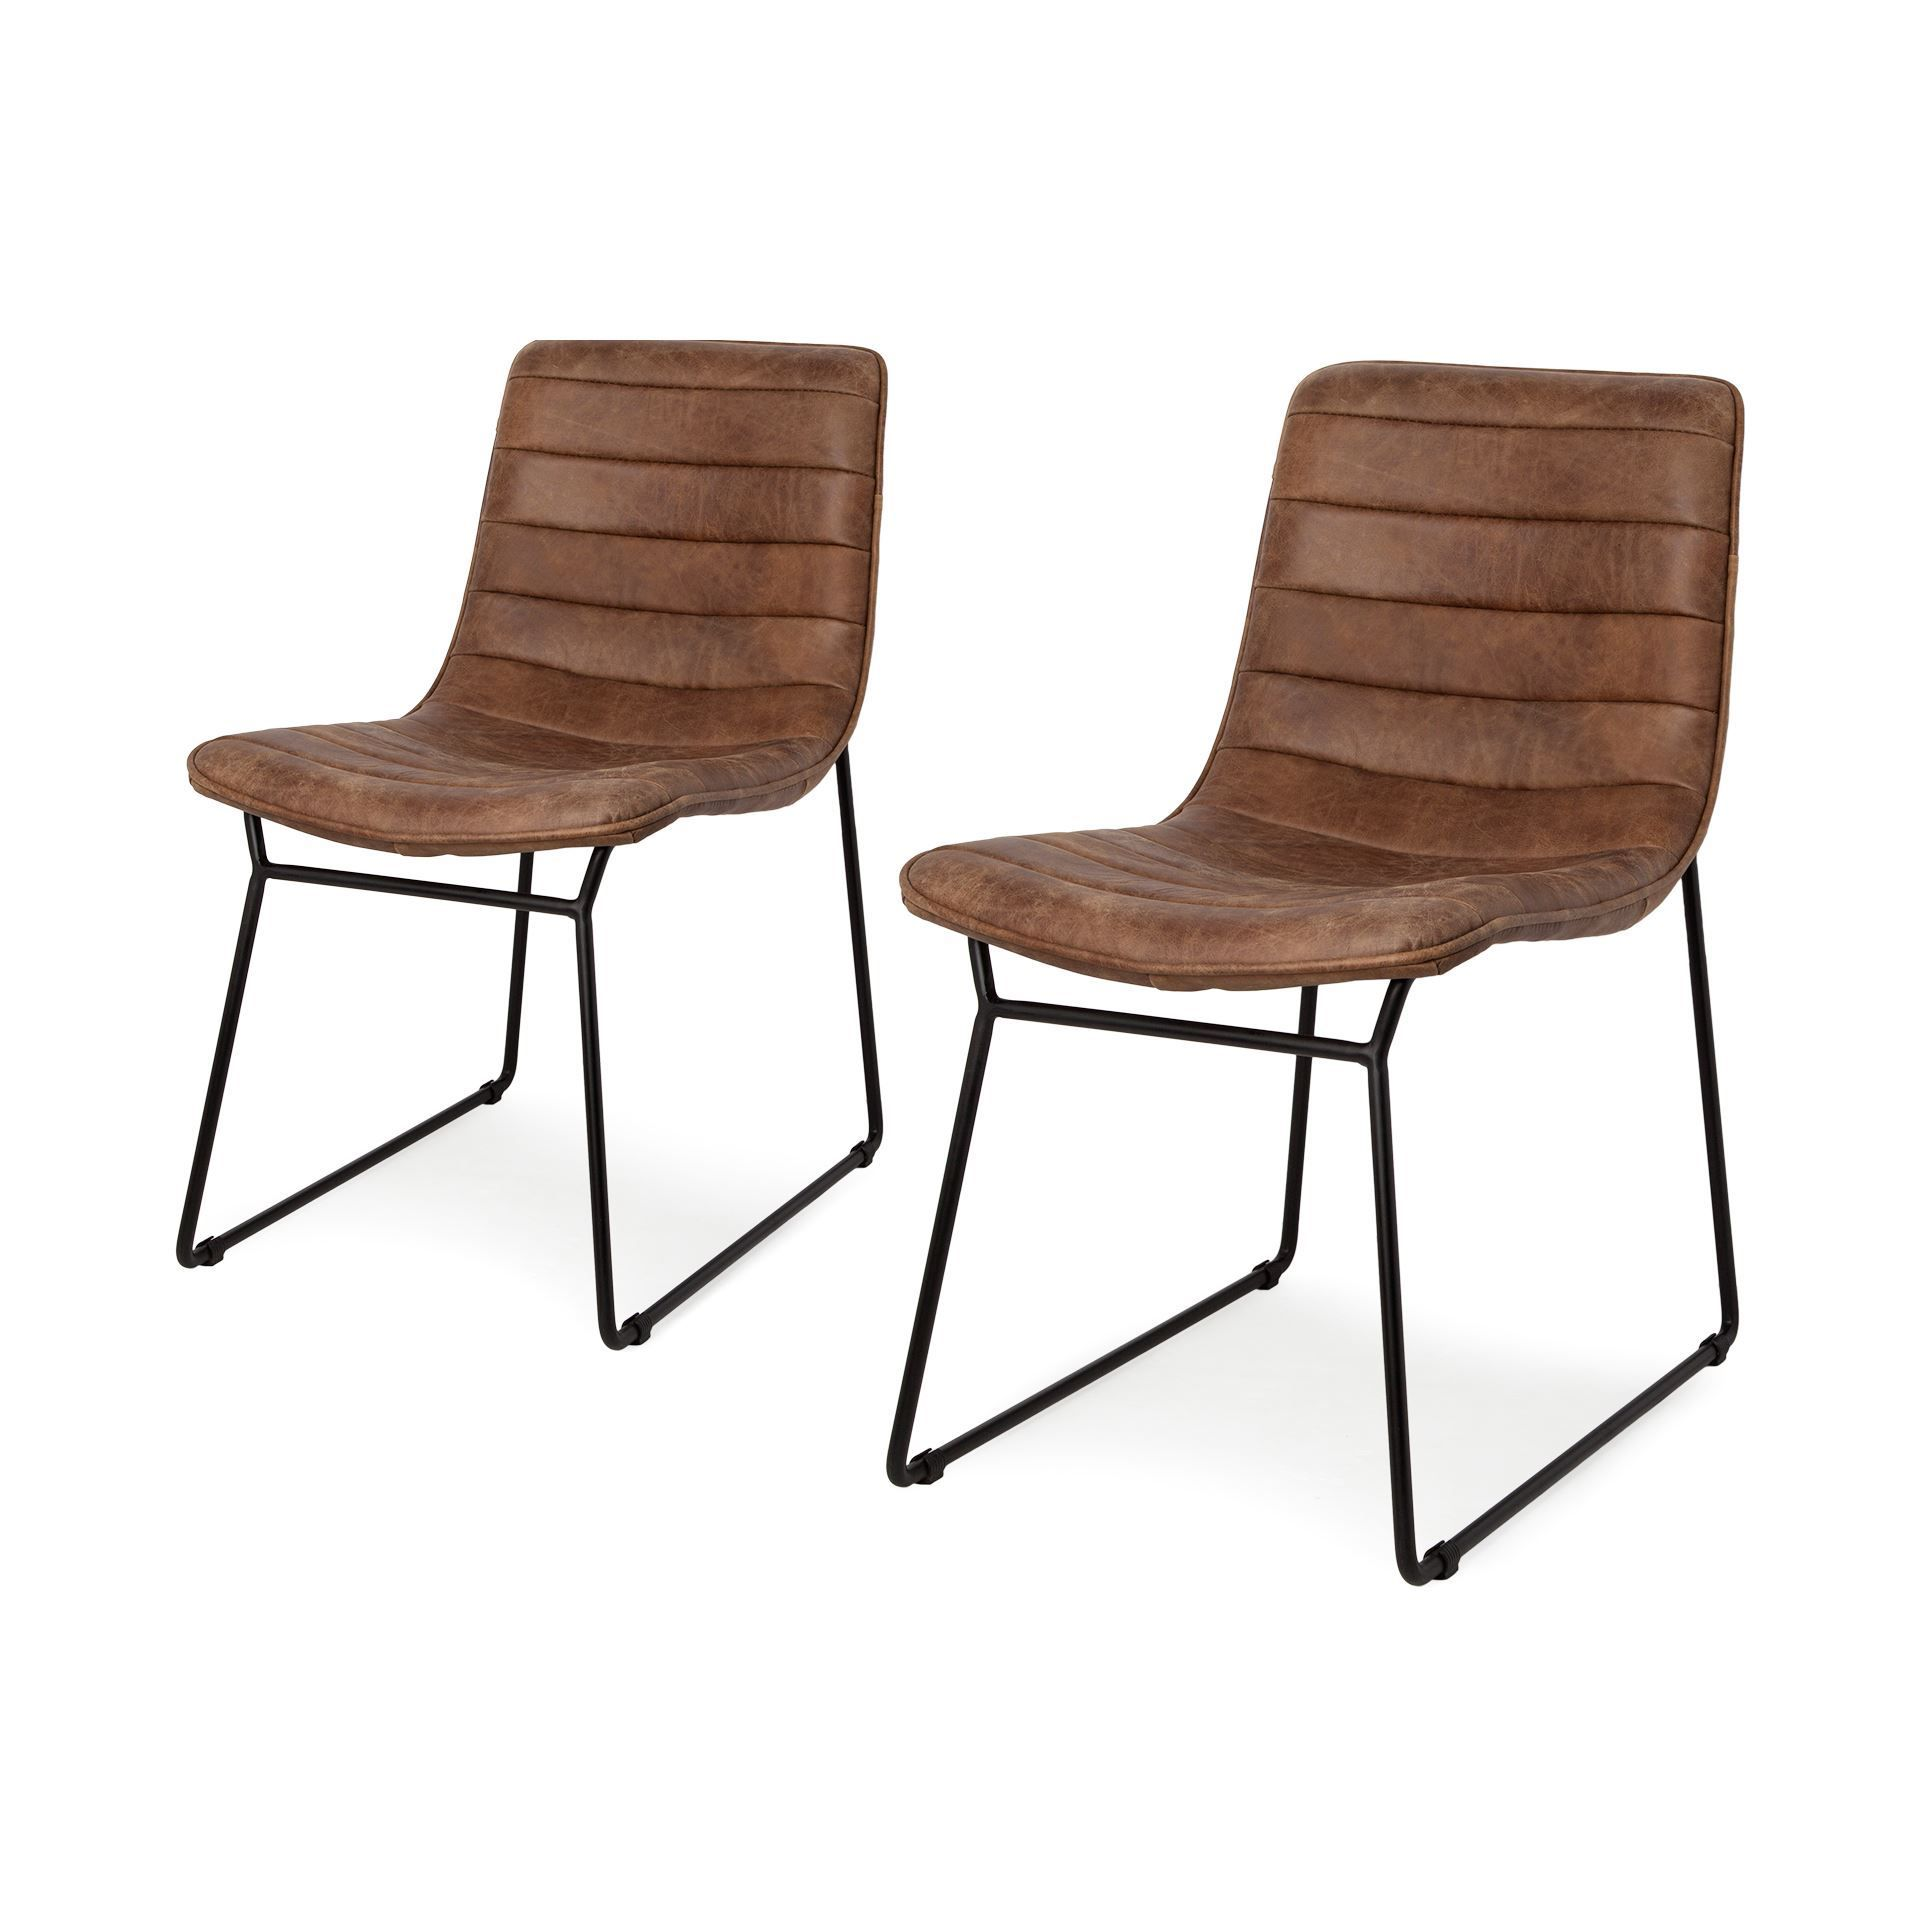 Thornton is a set of 2 dining chairs that have a brown top grain leather